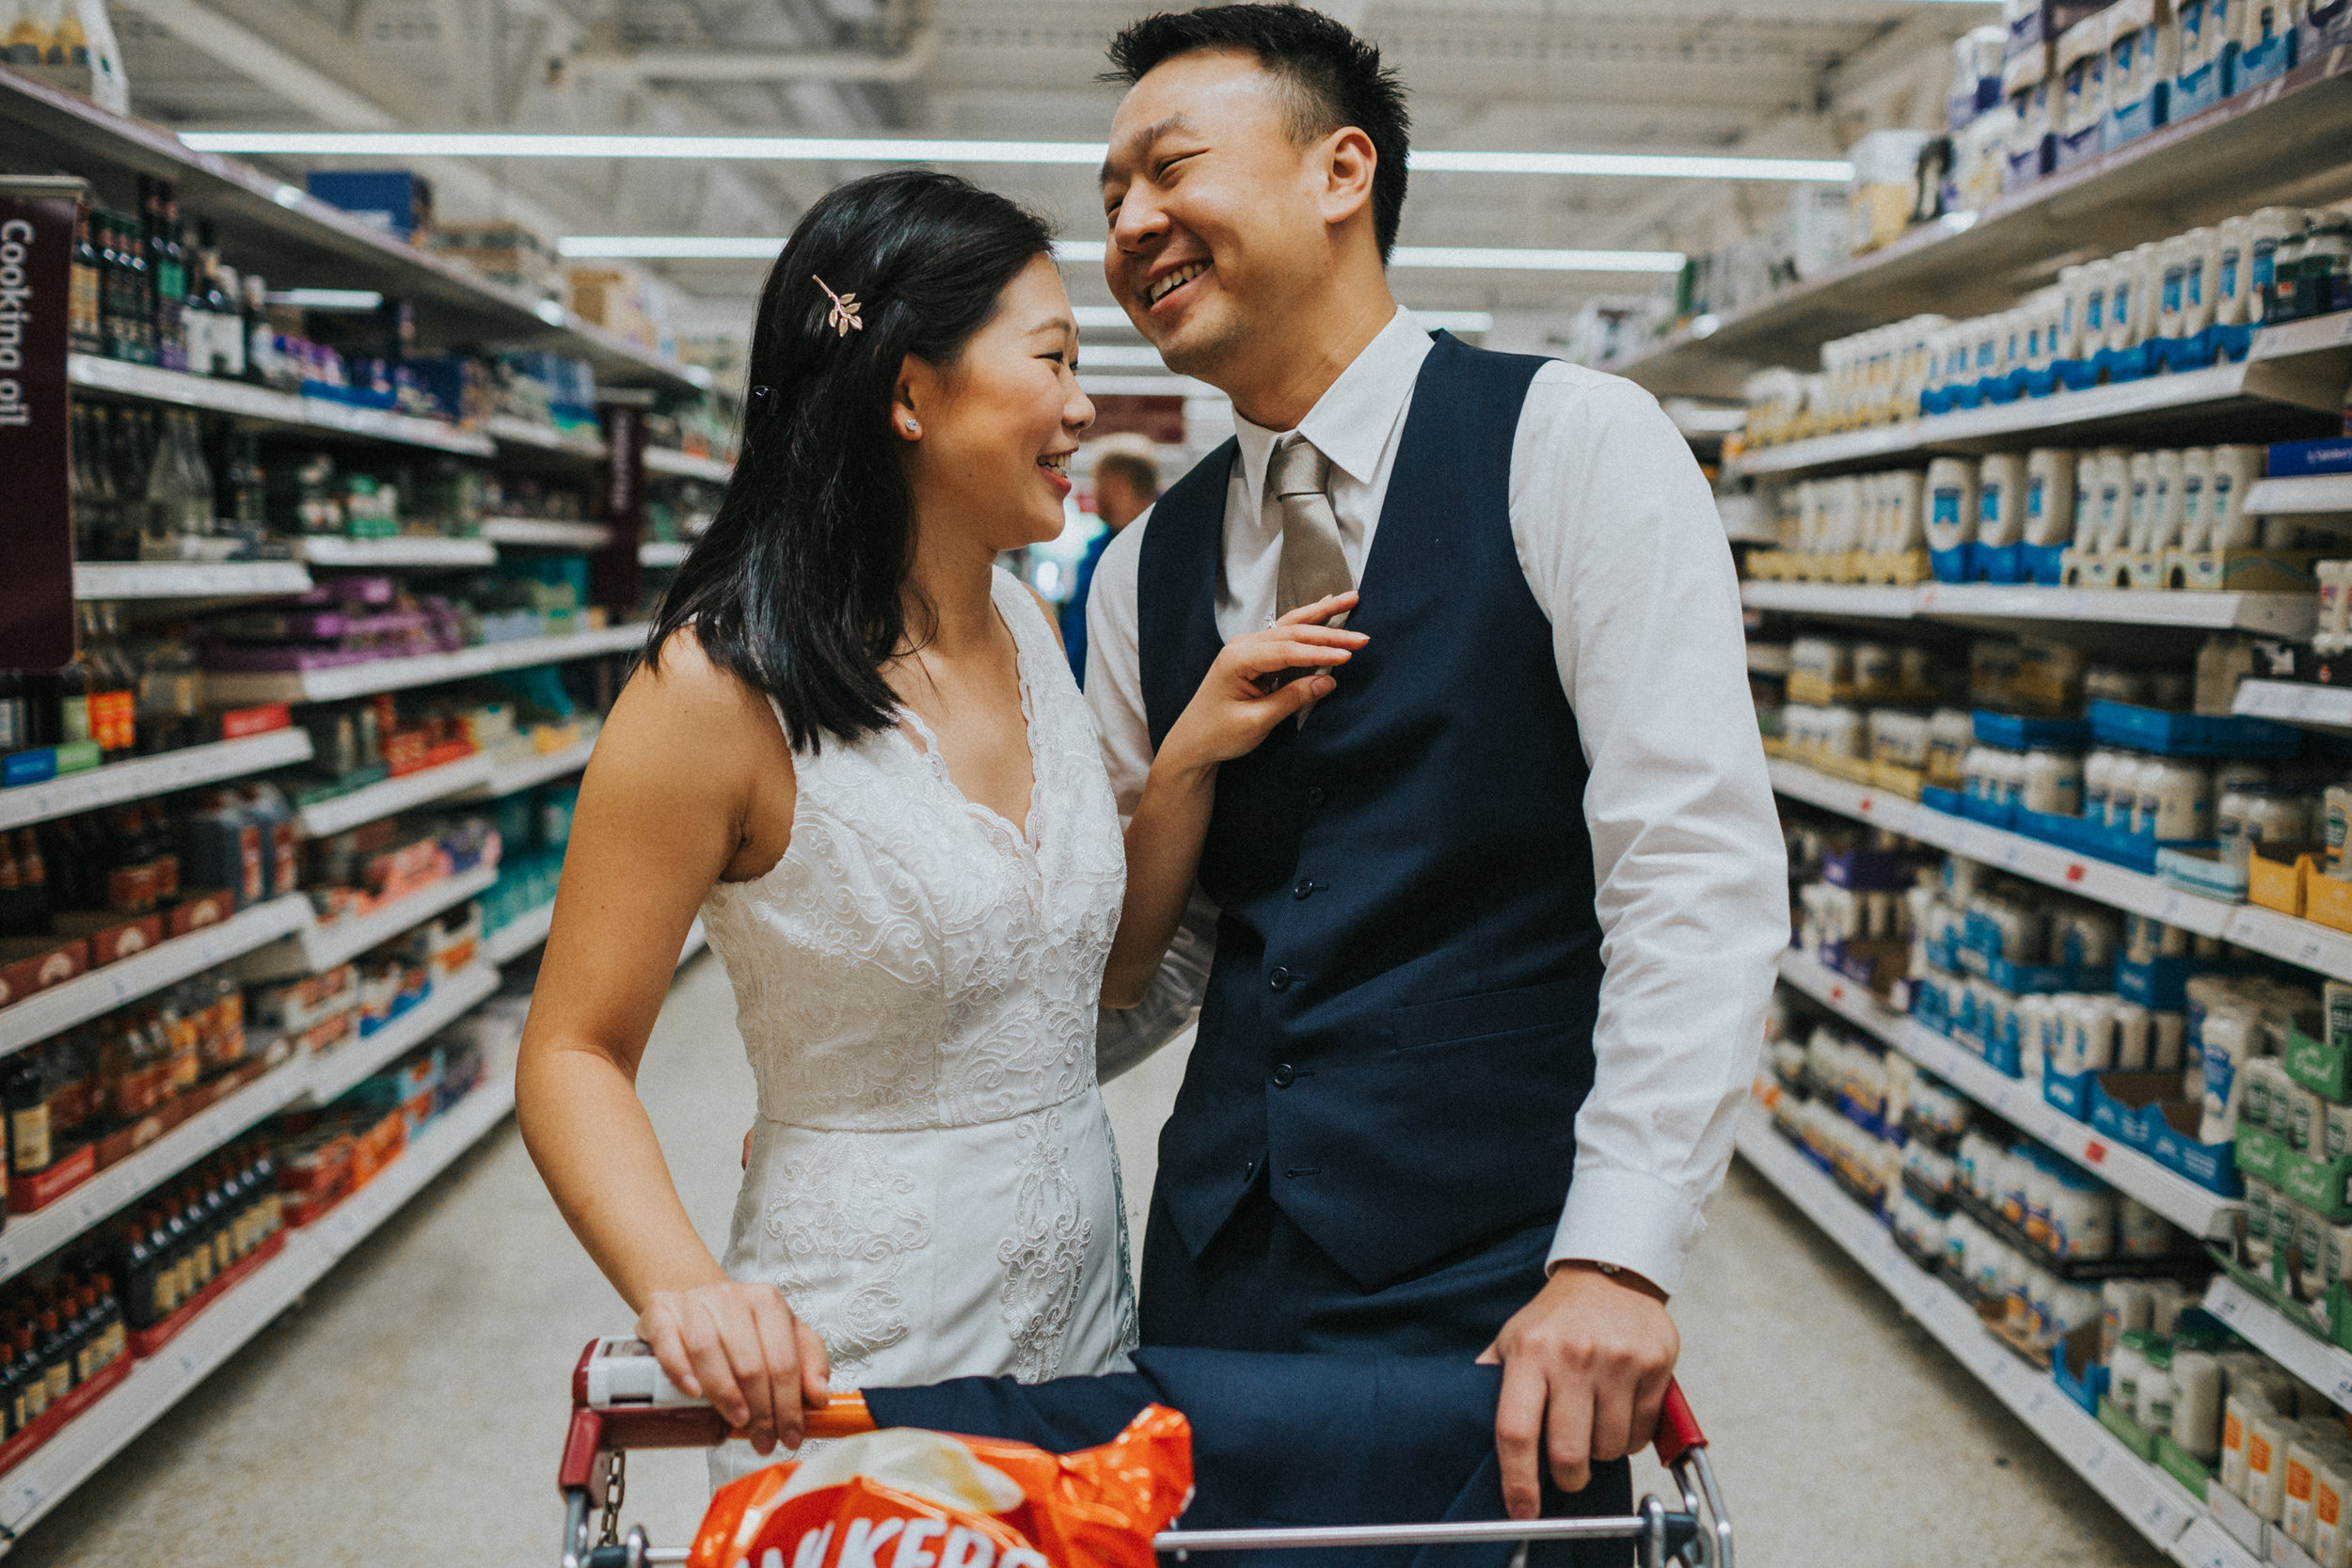 Bride fixing Grooms tie in supermarket.